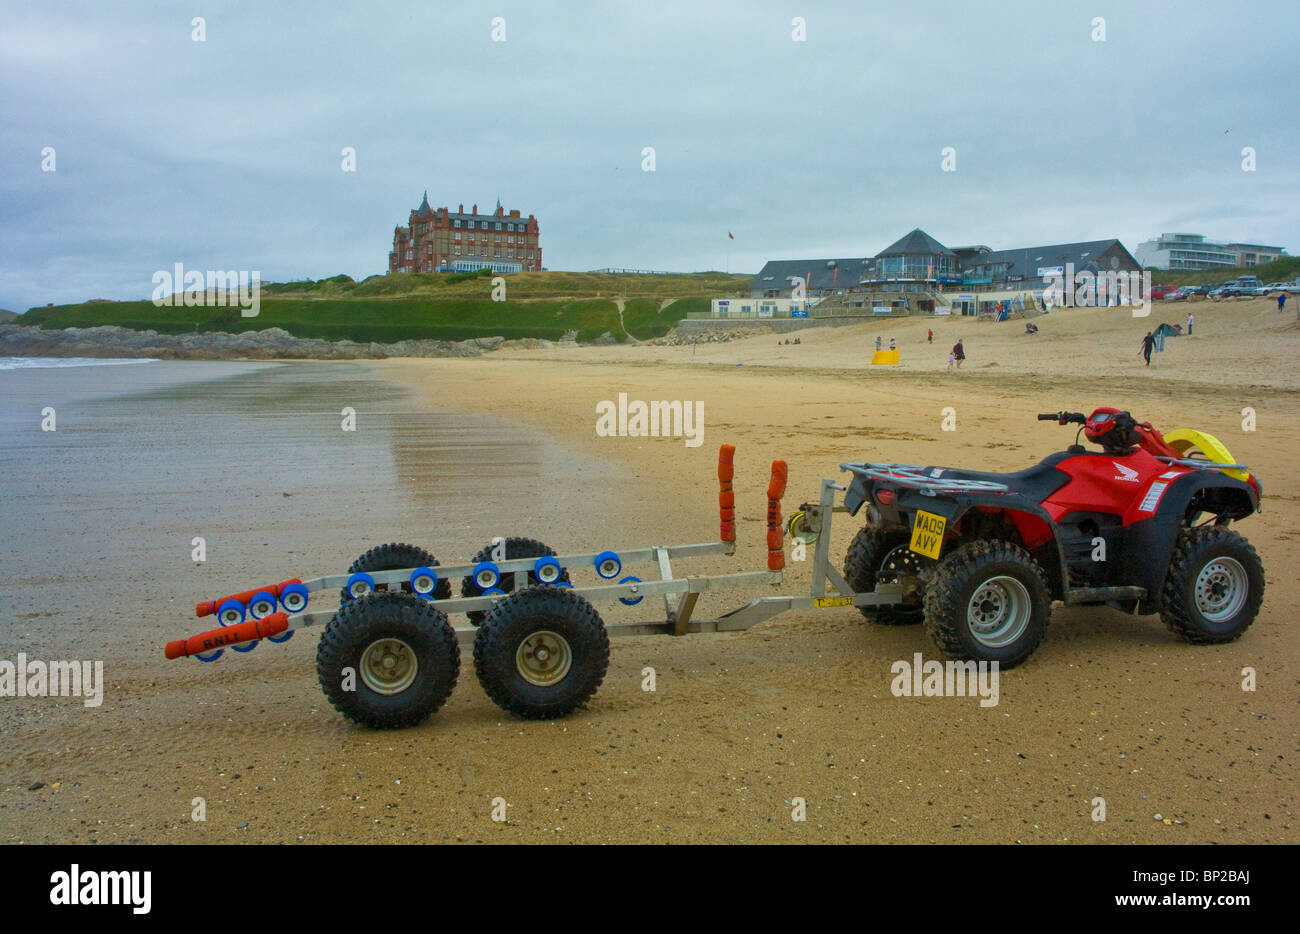 lifeguard equipment quad bike jet ski trailer fistral beach stock photo royalty free image. Black Bedroom Furniture Sets. Home Design Ideas